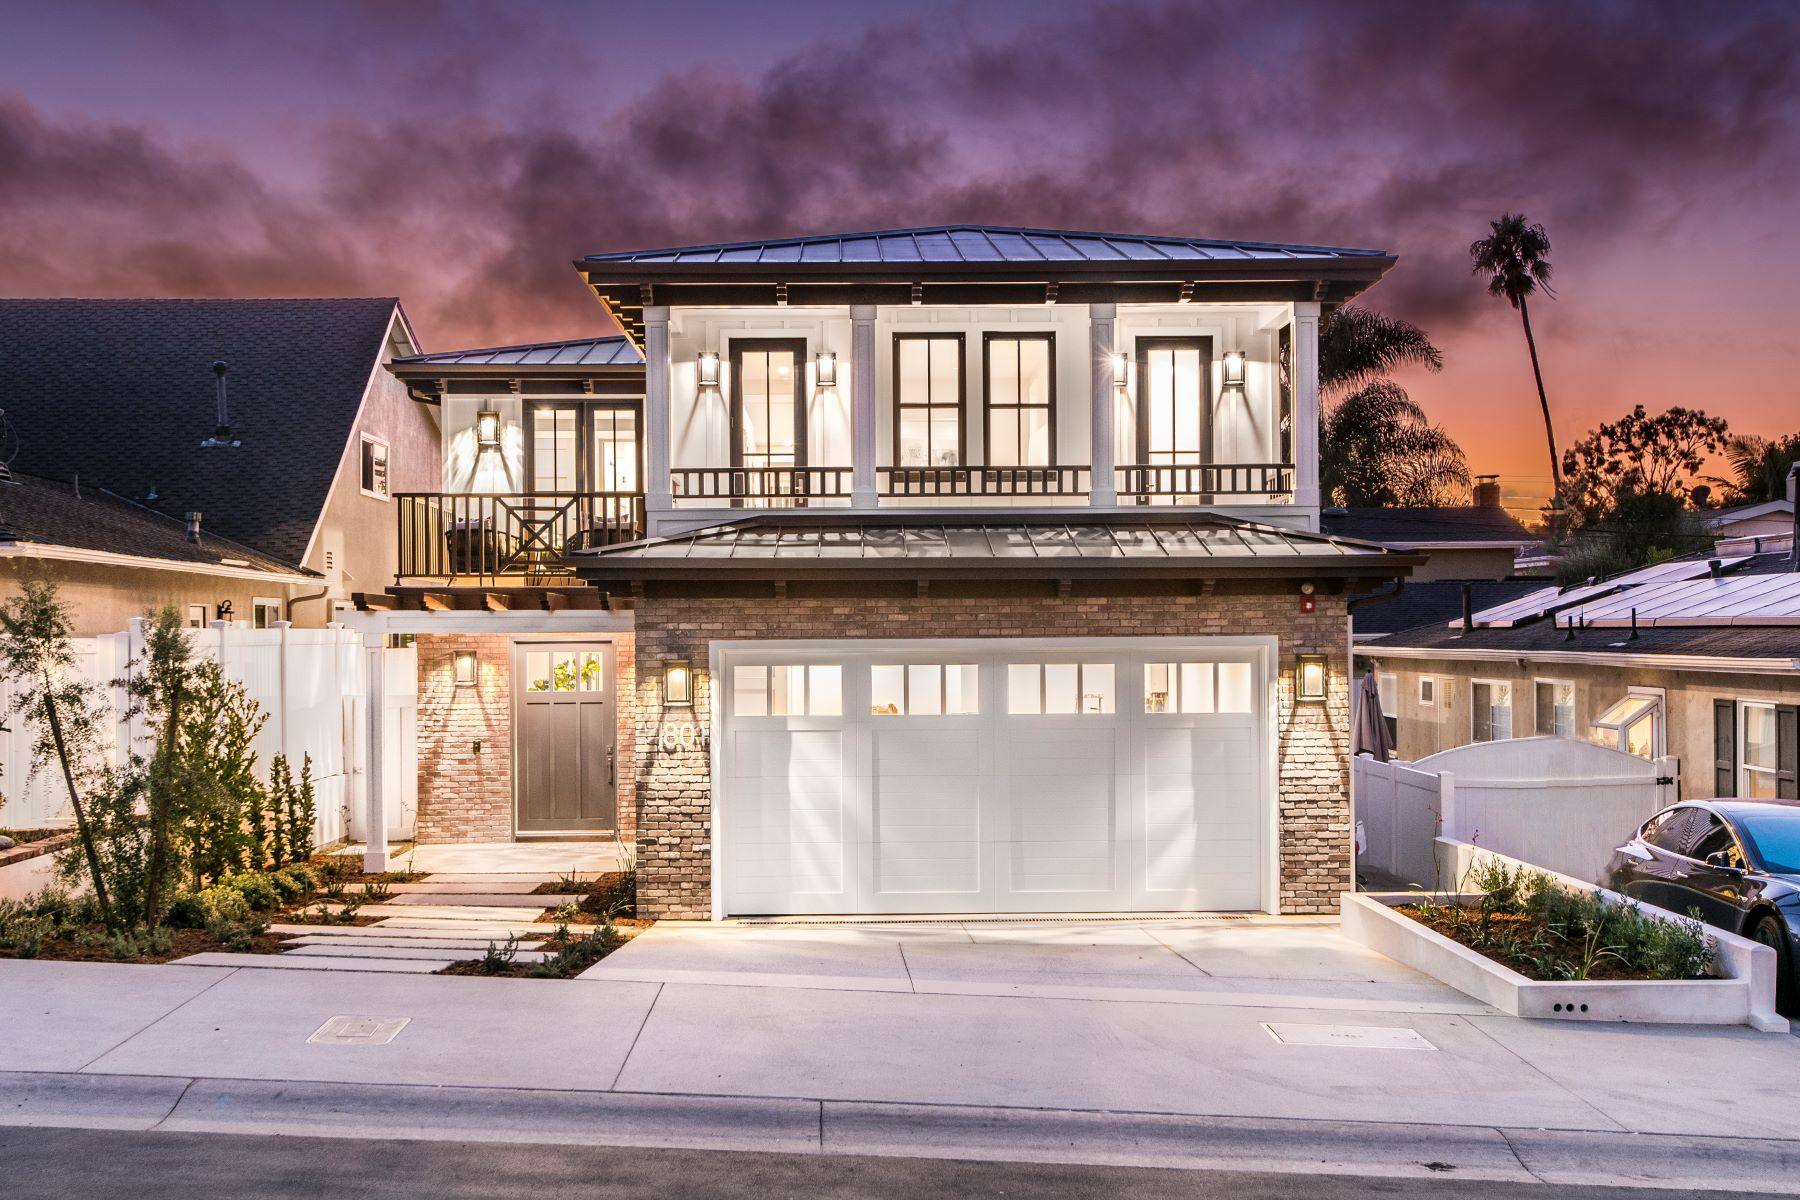 Single Family Homes for Sale at 1801 Oak Avenue, Manhattan Beach, CA 90266 1801 Oak Avenue Manhattan Beach, California 90266 United States